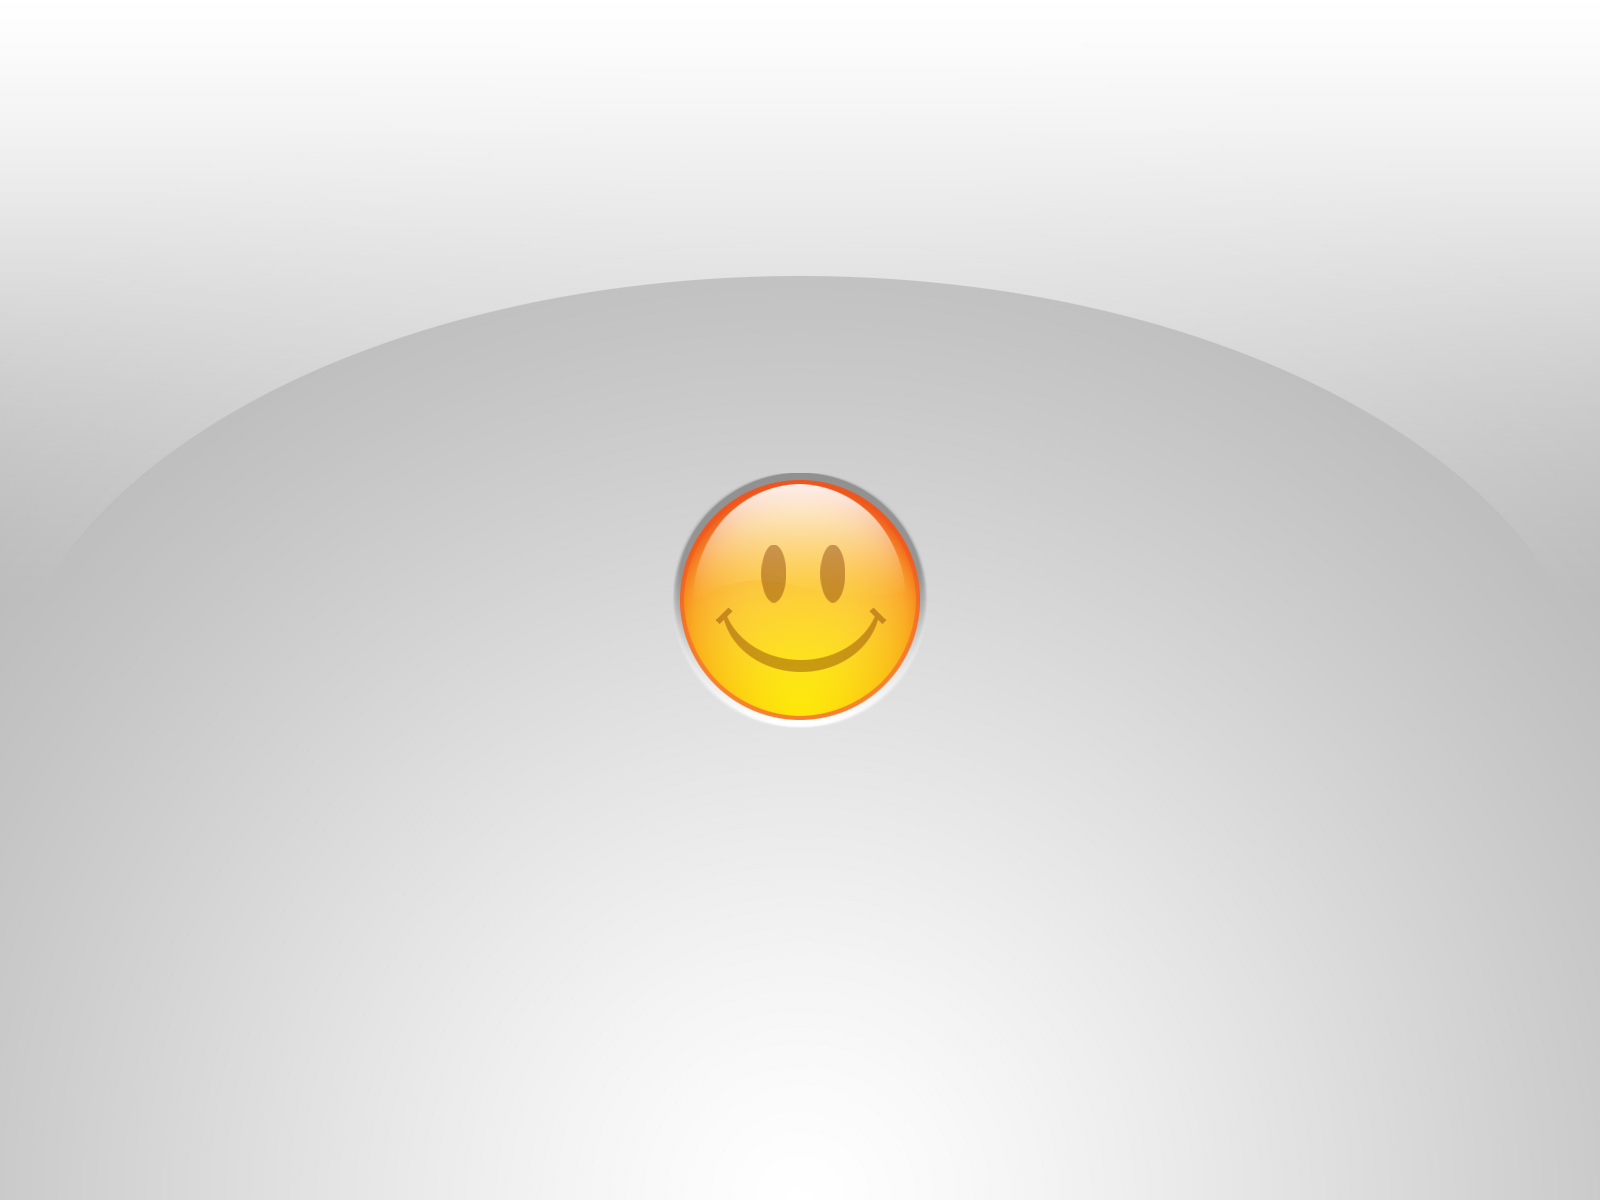 Yellow smiley face wallpapers yellow smiley face stock photos image yellow smiley face wallpapers and stock photos altavistaventures Choice Image